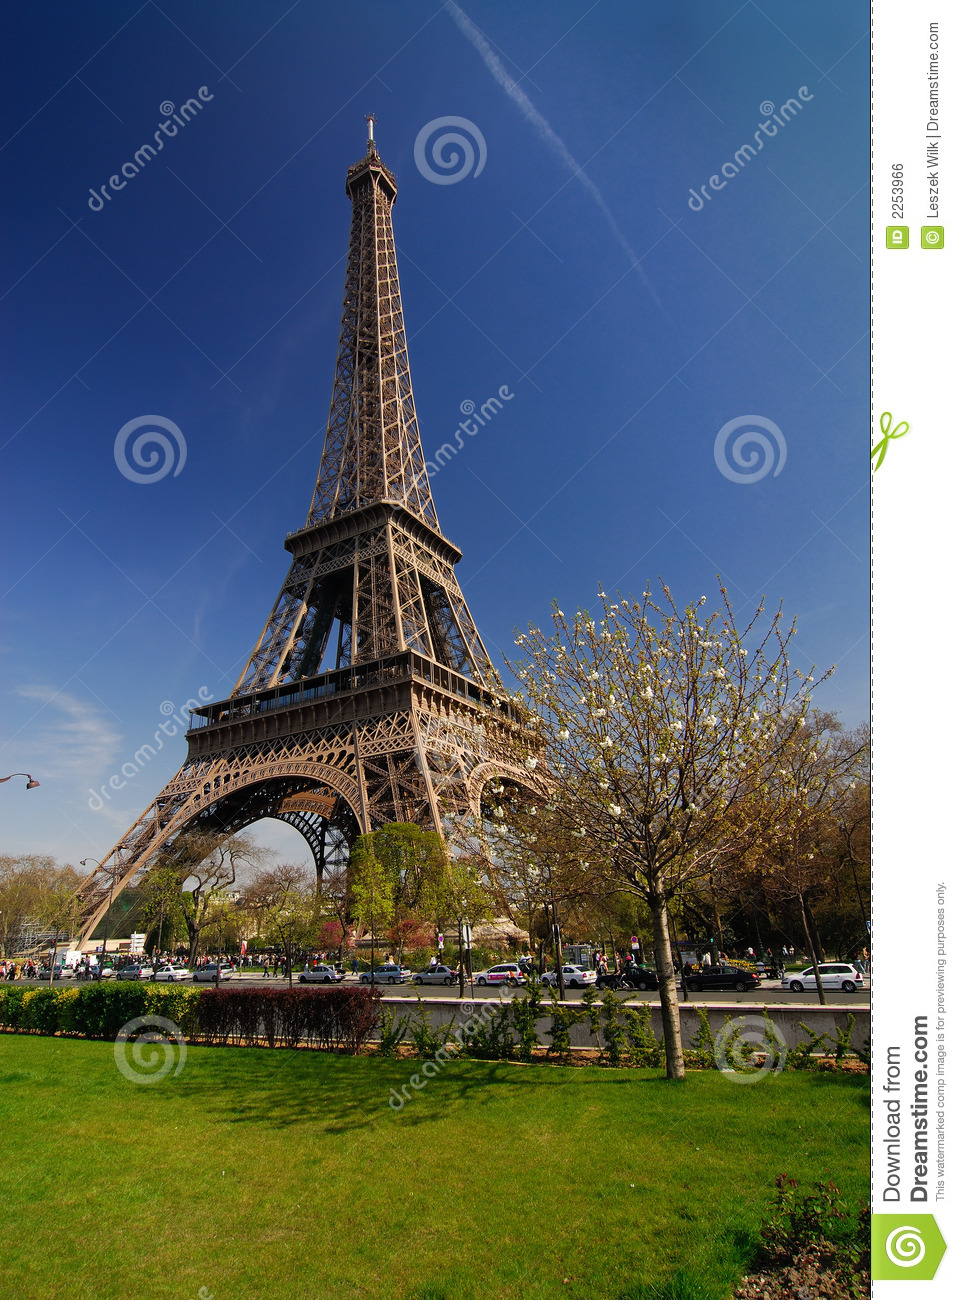 paris tour eiffel royalty free stock image image 2253966. Black Bedroom Furniture Sets. Home Design Ideas